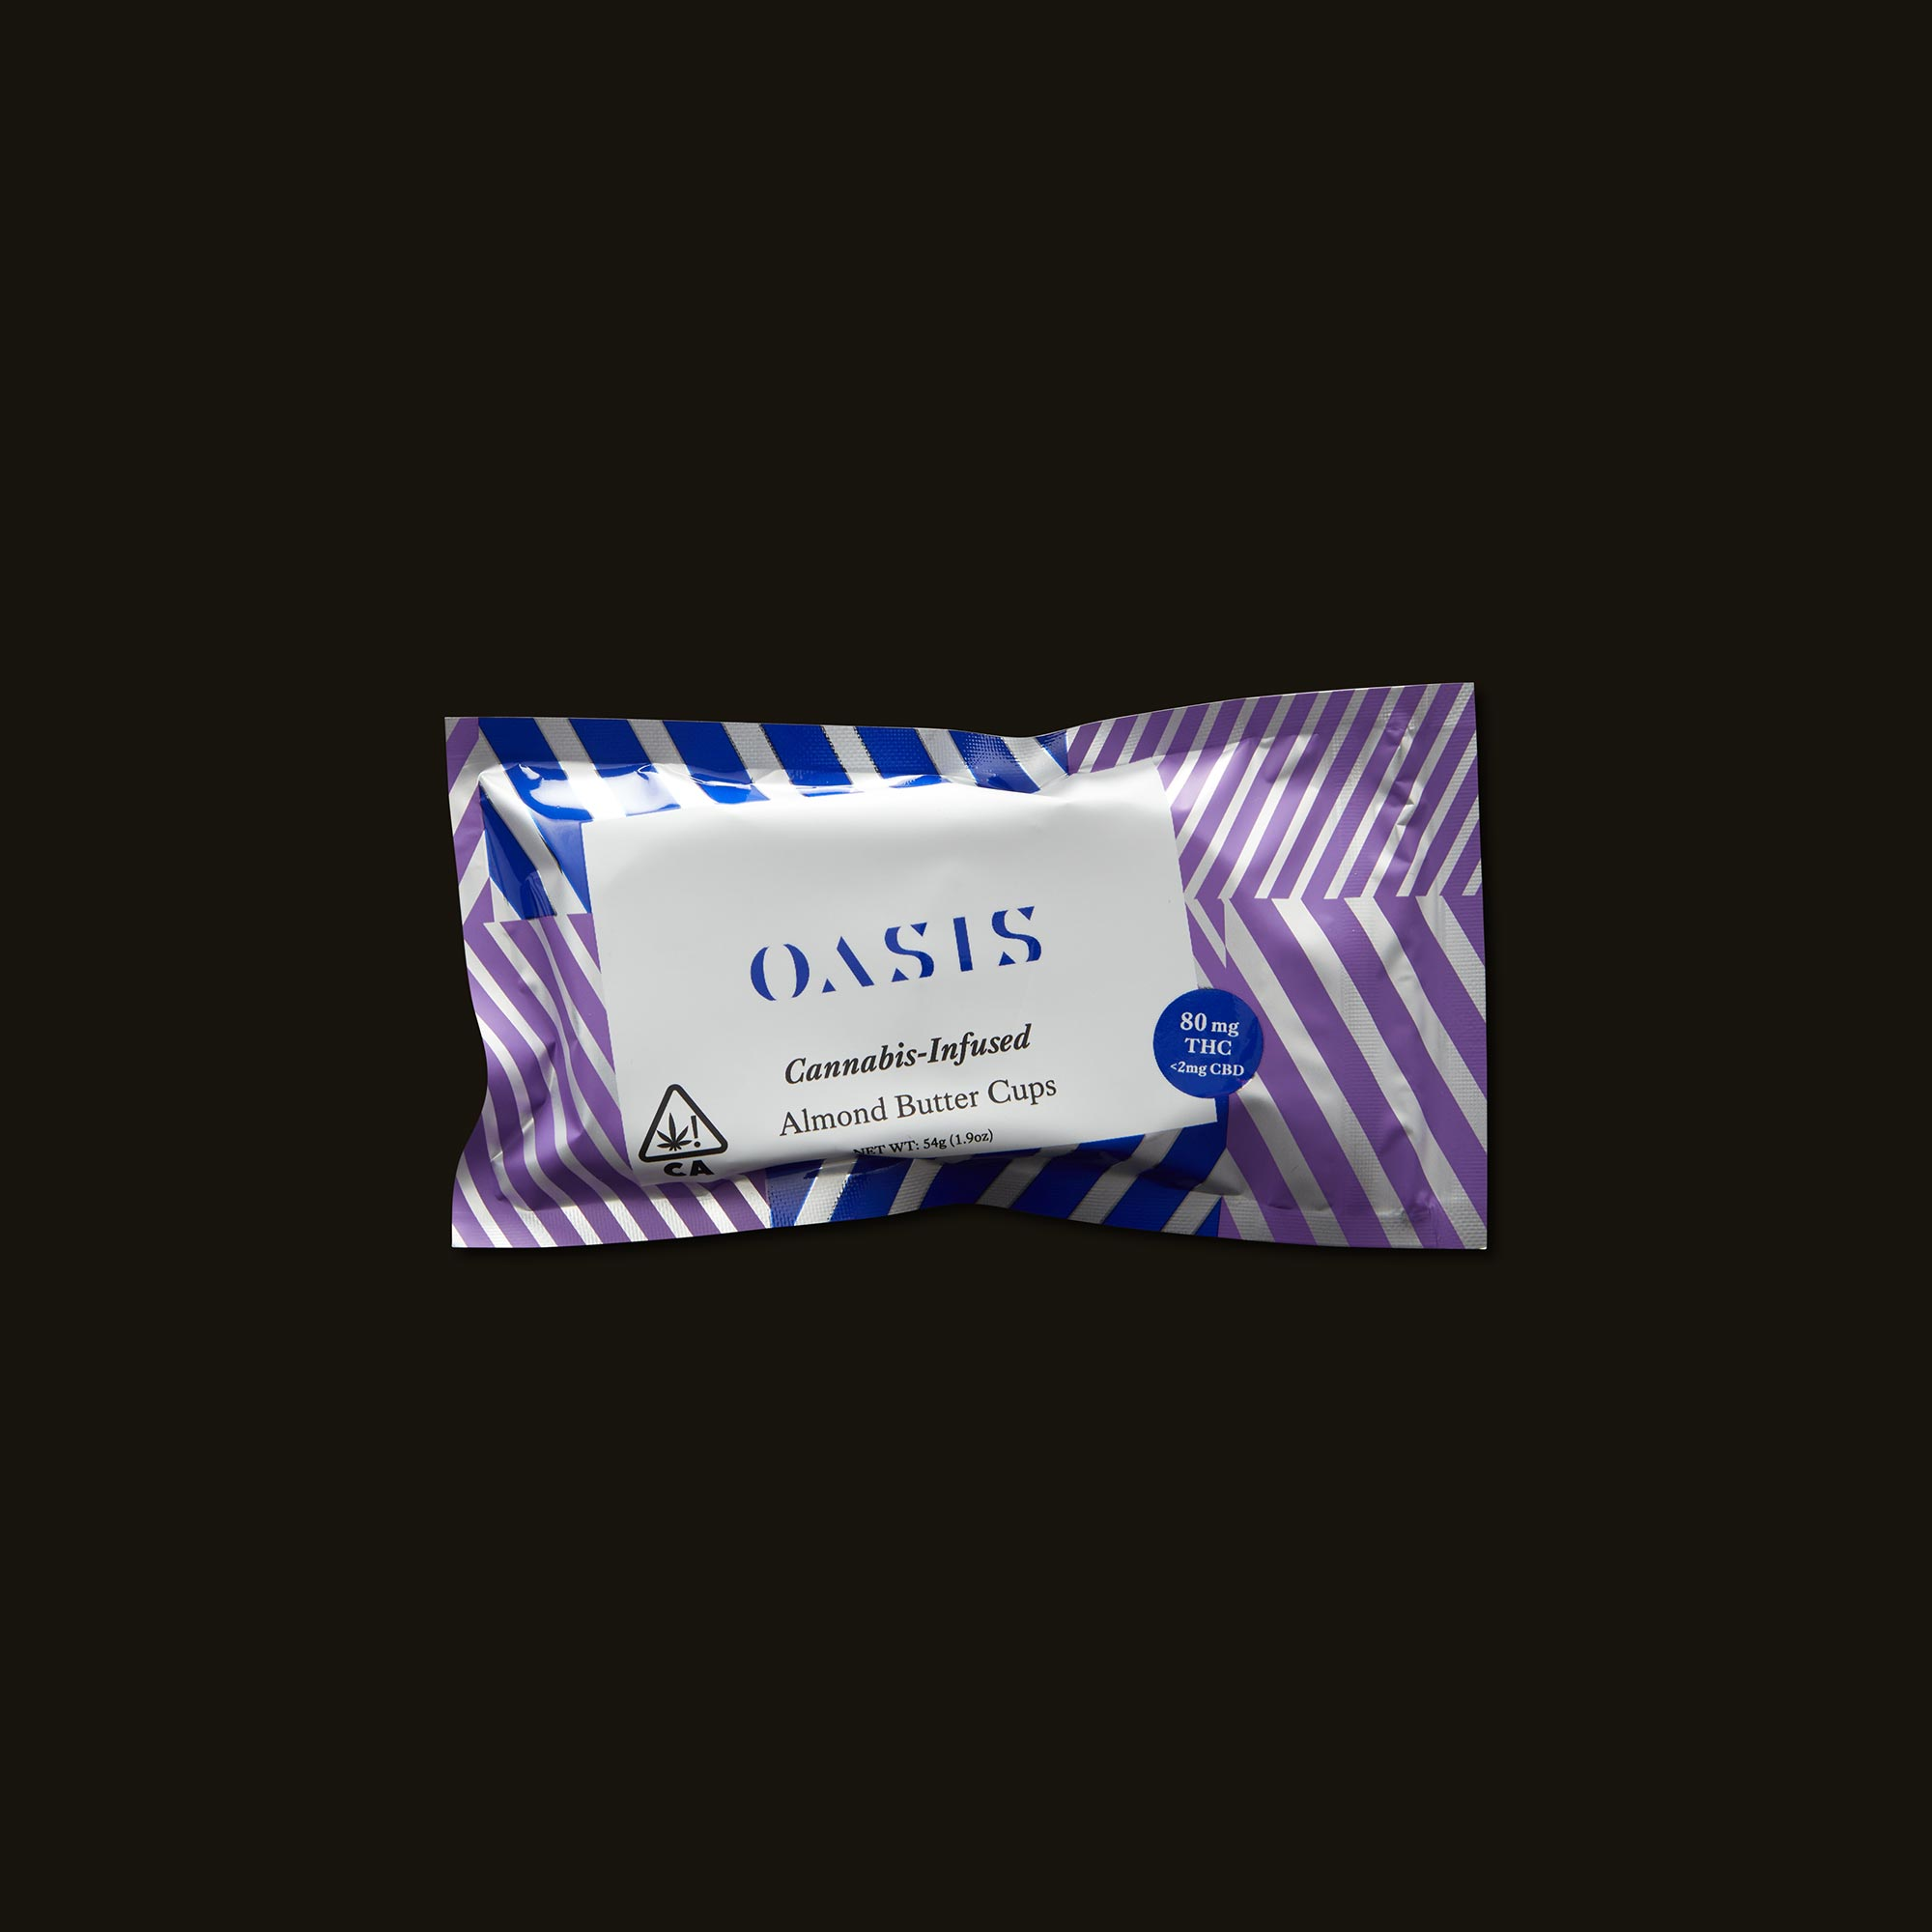 Oasis Almond Butter Cups